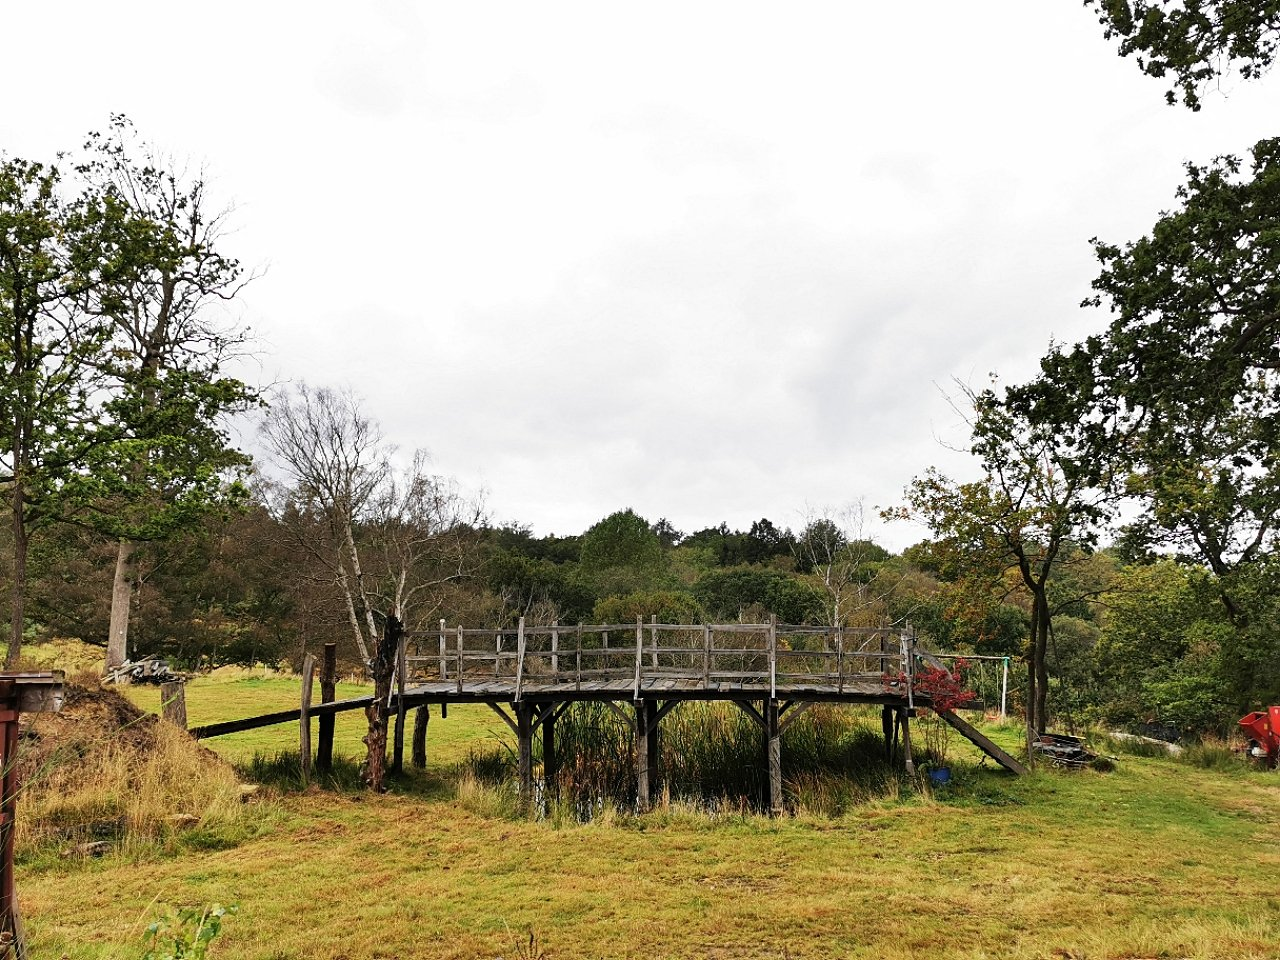 """A wooden bridge, originally known as Posingford Bridge and officially renamed Poohsticks Bridge in 1979 inspired by """"Winnie the Pooh"""" author A.A. Milne, in Ashdown Forest, East Sussex, U.K. (Summers Place Auctions via AFP)"""